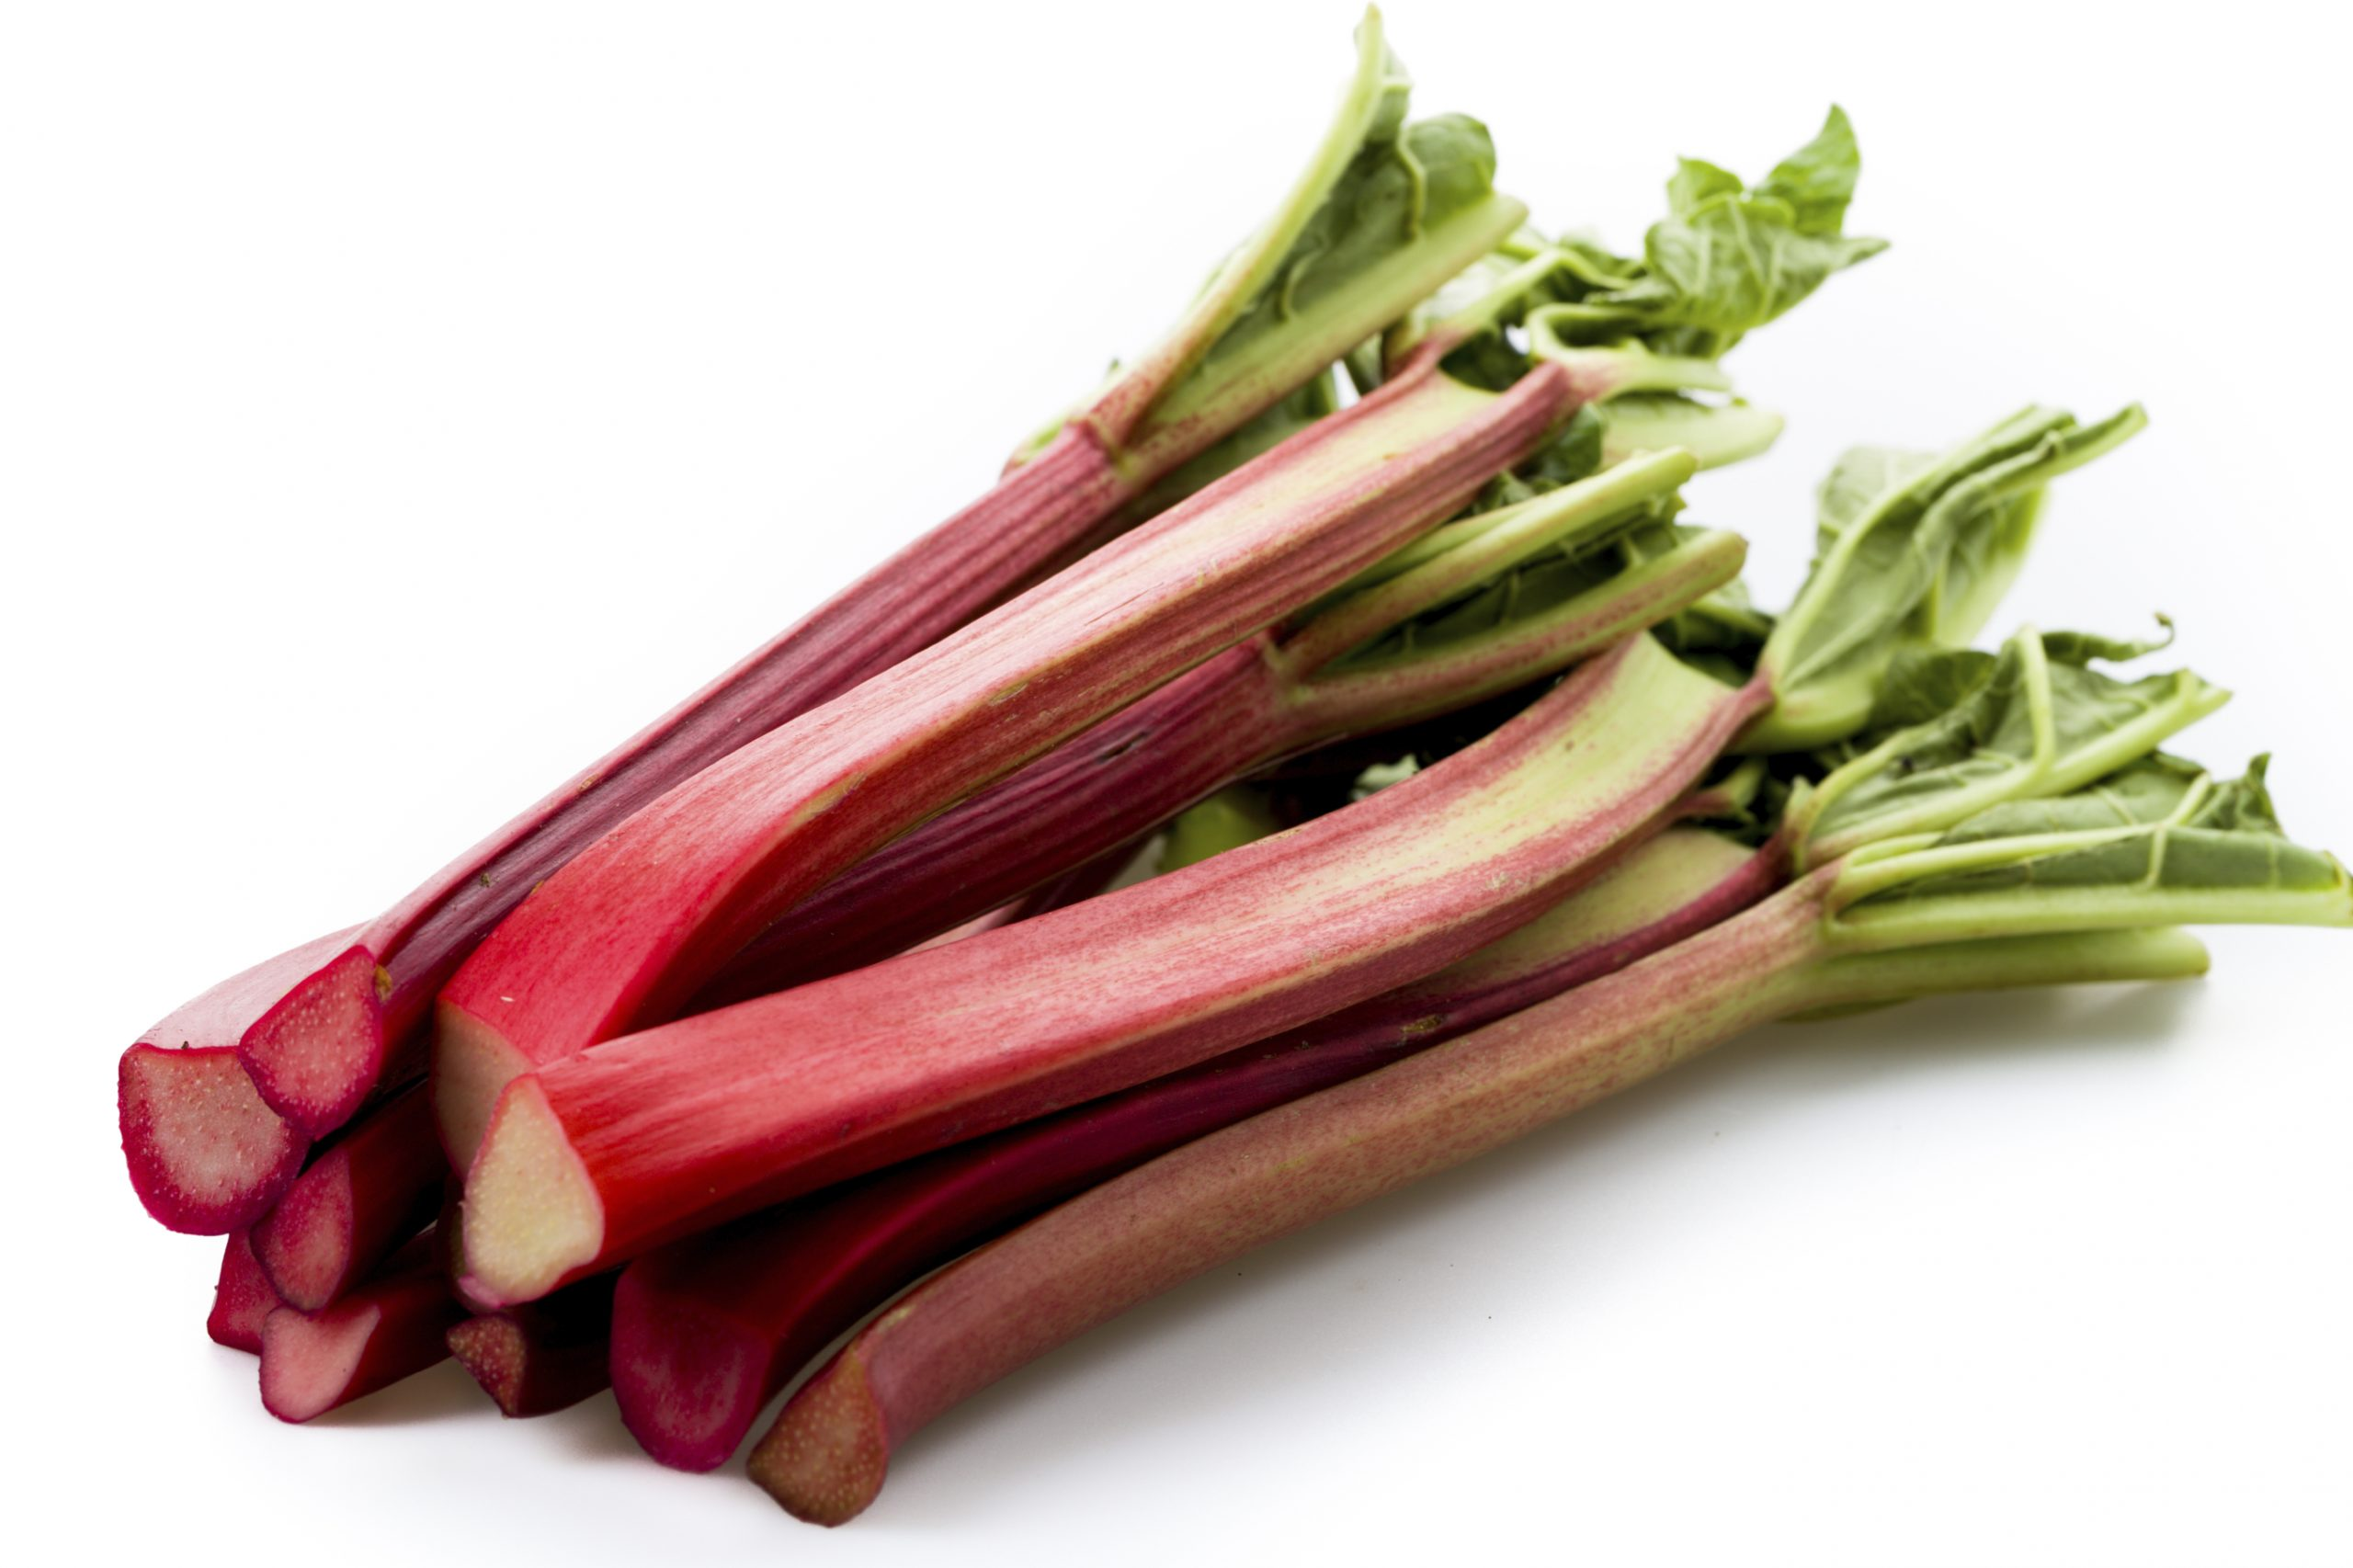 A Rhubarb Juice Recipe for Canning